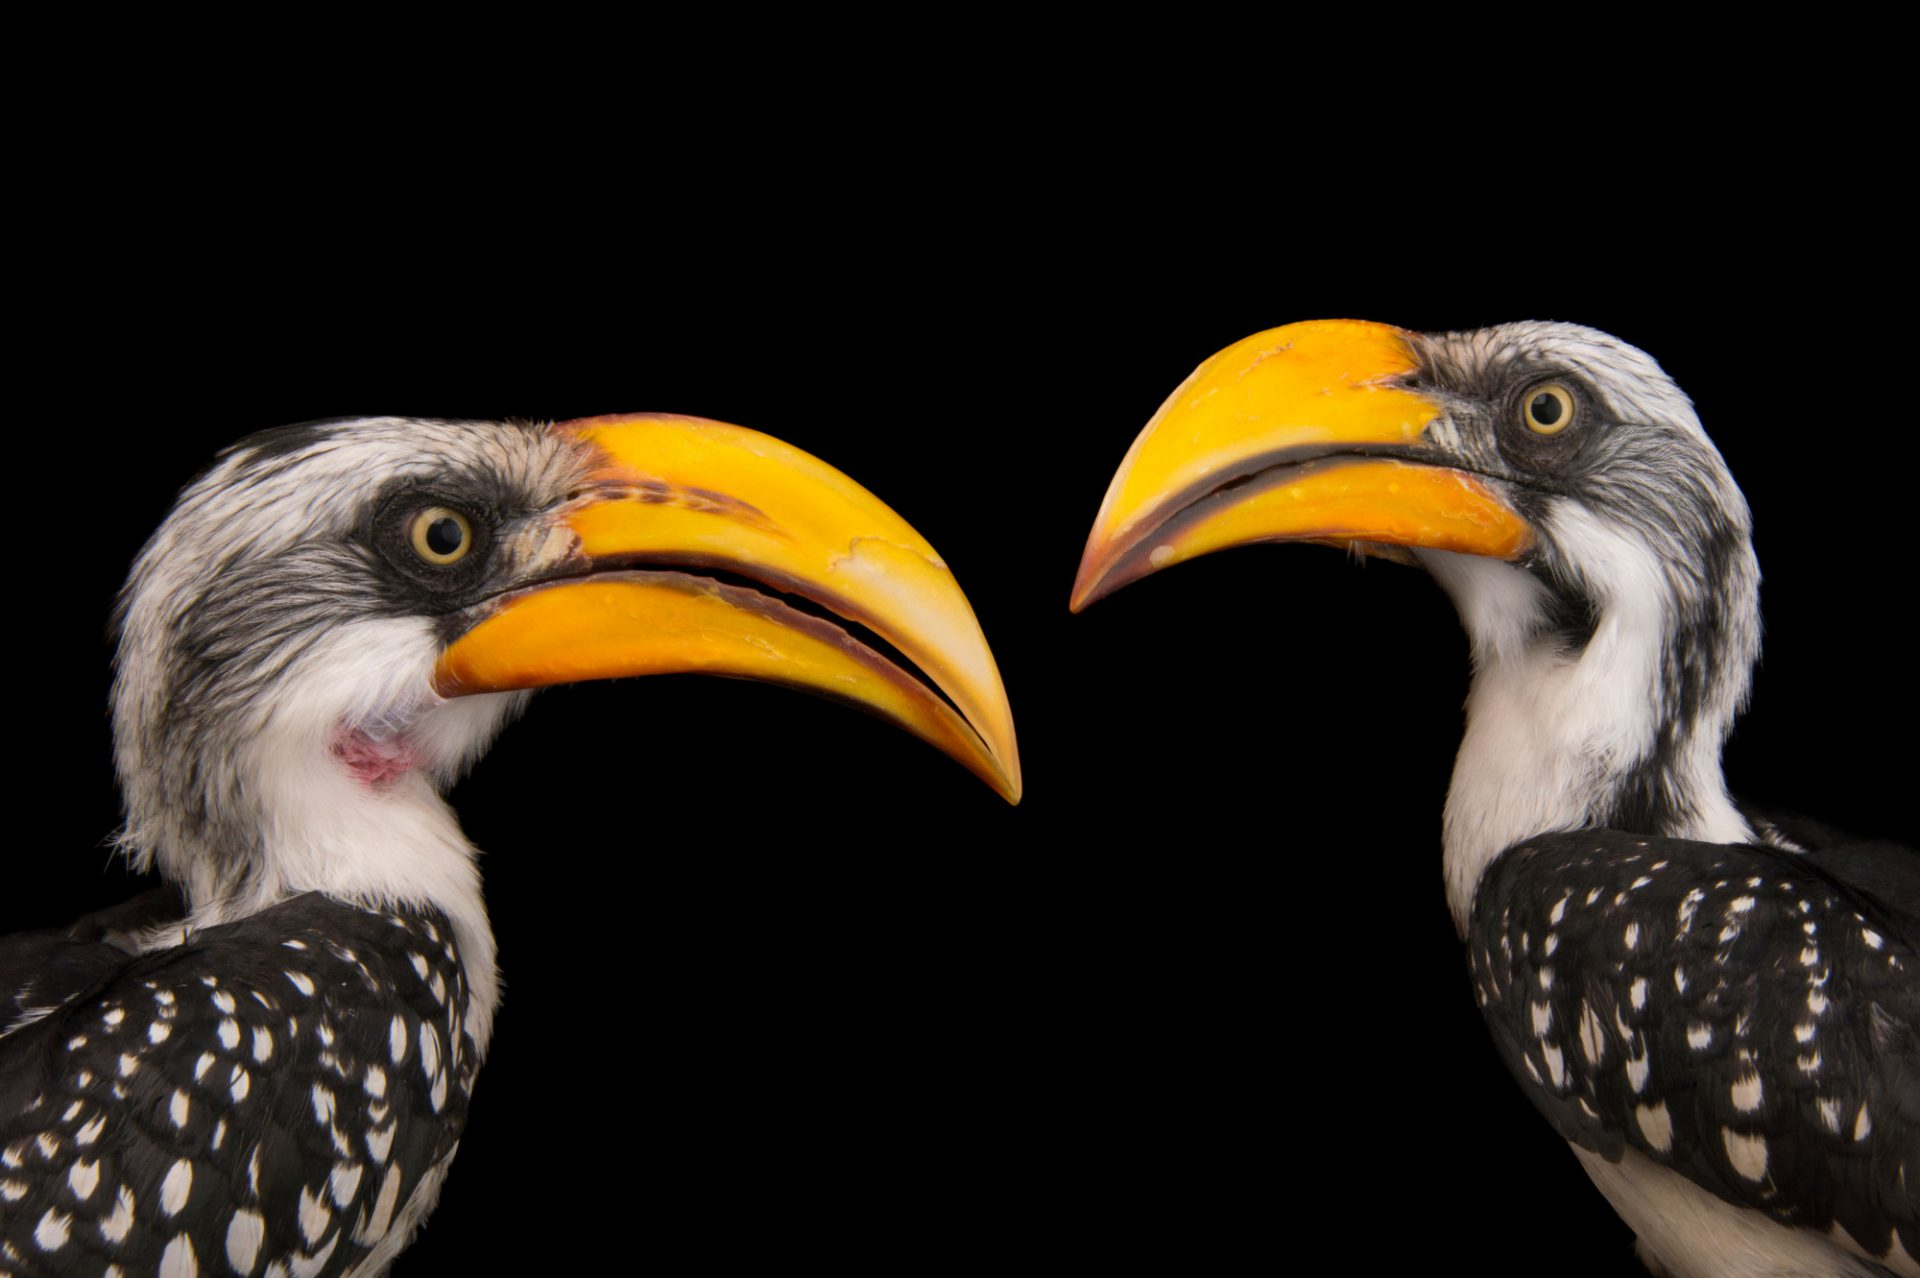 Eastern yellow-billed hornbill (Tockus flavirostris flavirostris) at the Indianapolis Zoo.